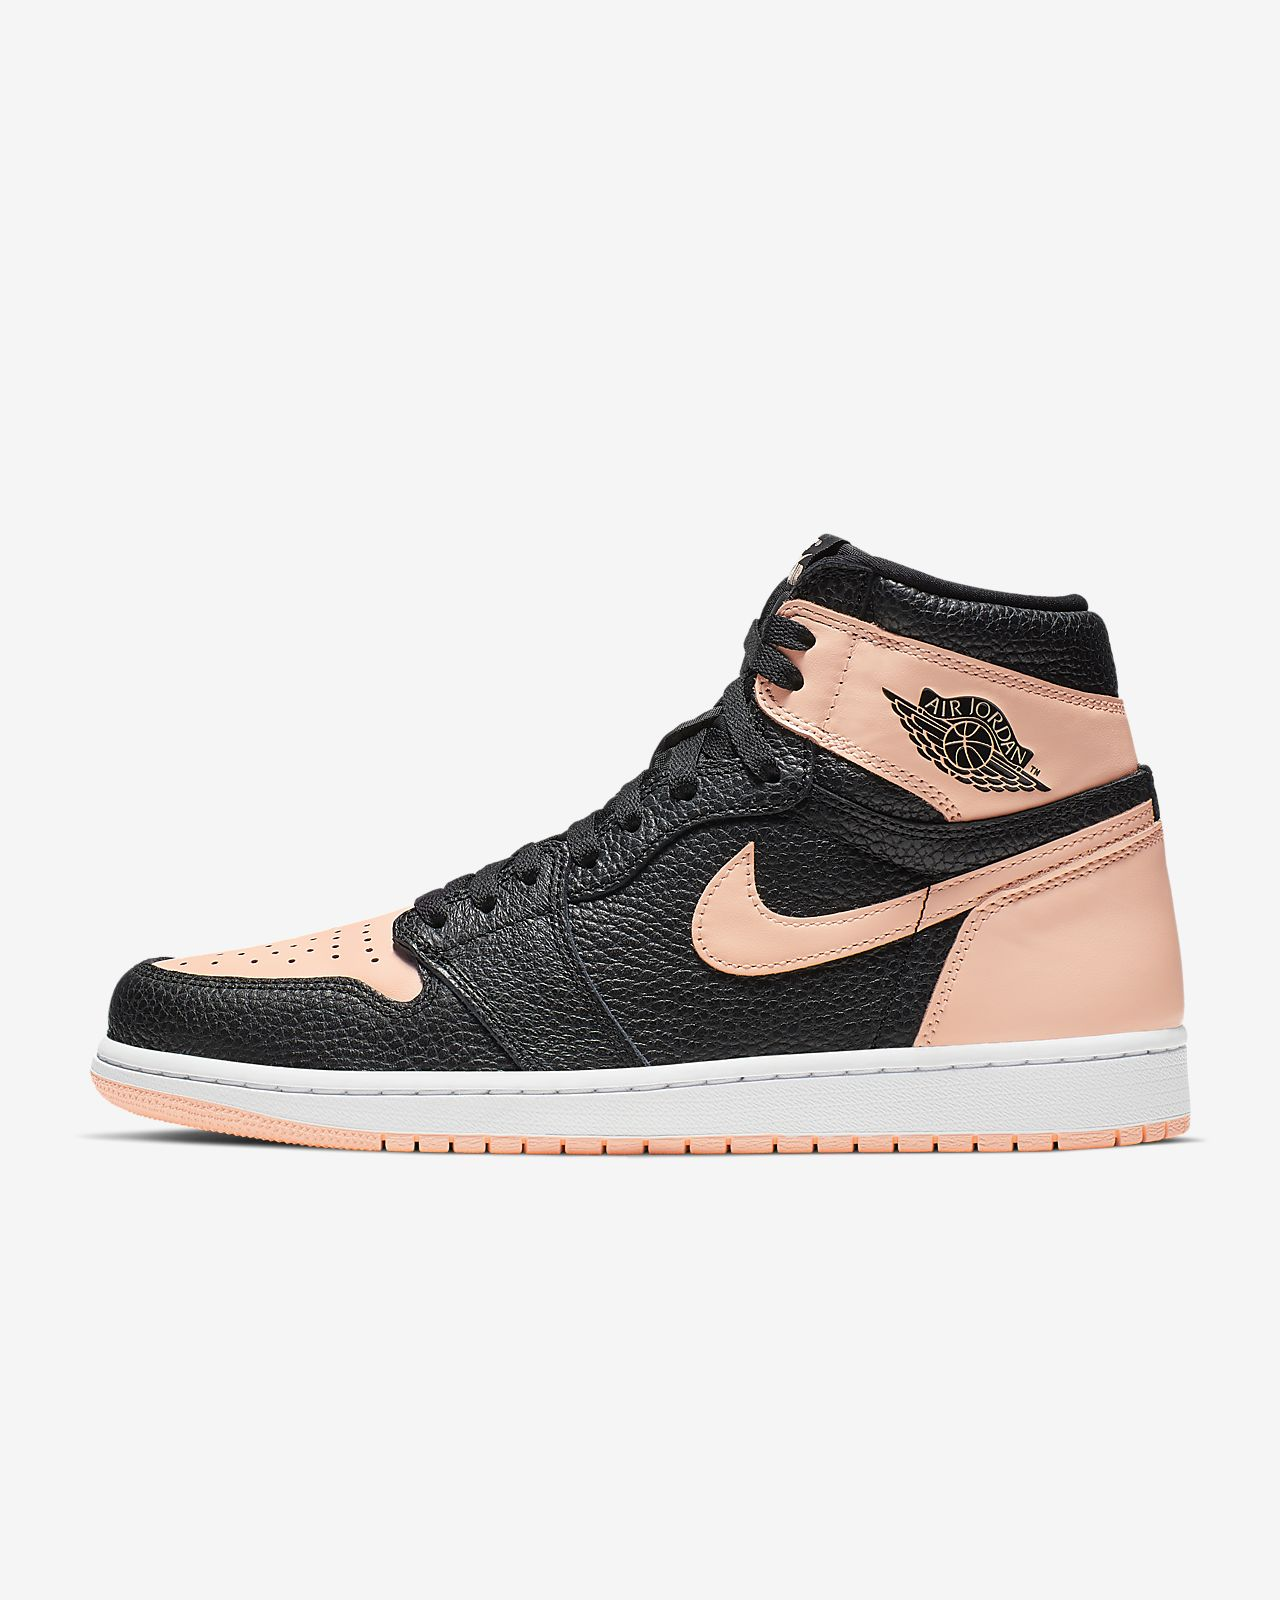 148648c0bba7 Low Resolution Air Jordan 1 Retro High OG Shoe Air Jordan 1 Retro High OG  Shoe